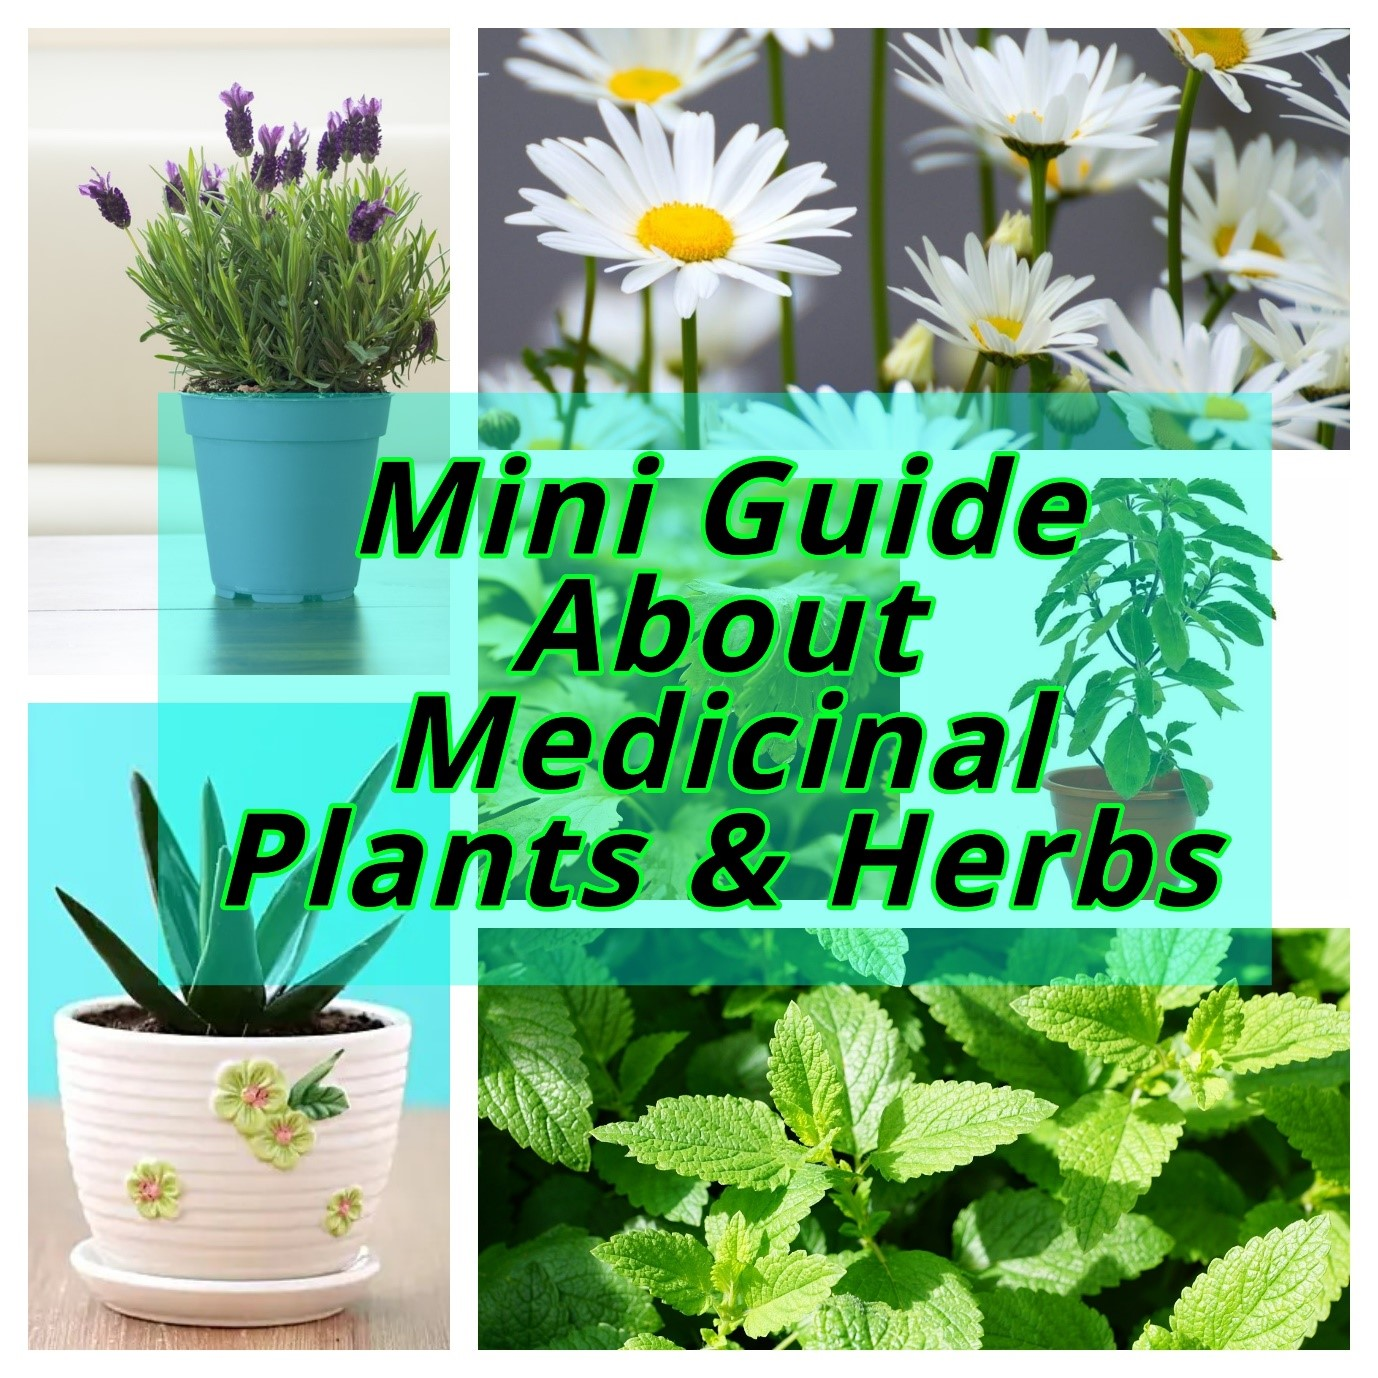 Mini Guide About Medicinal Plants & Herbs